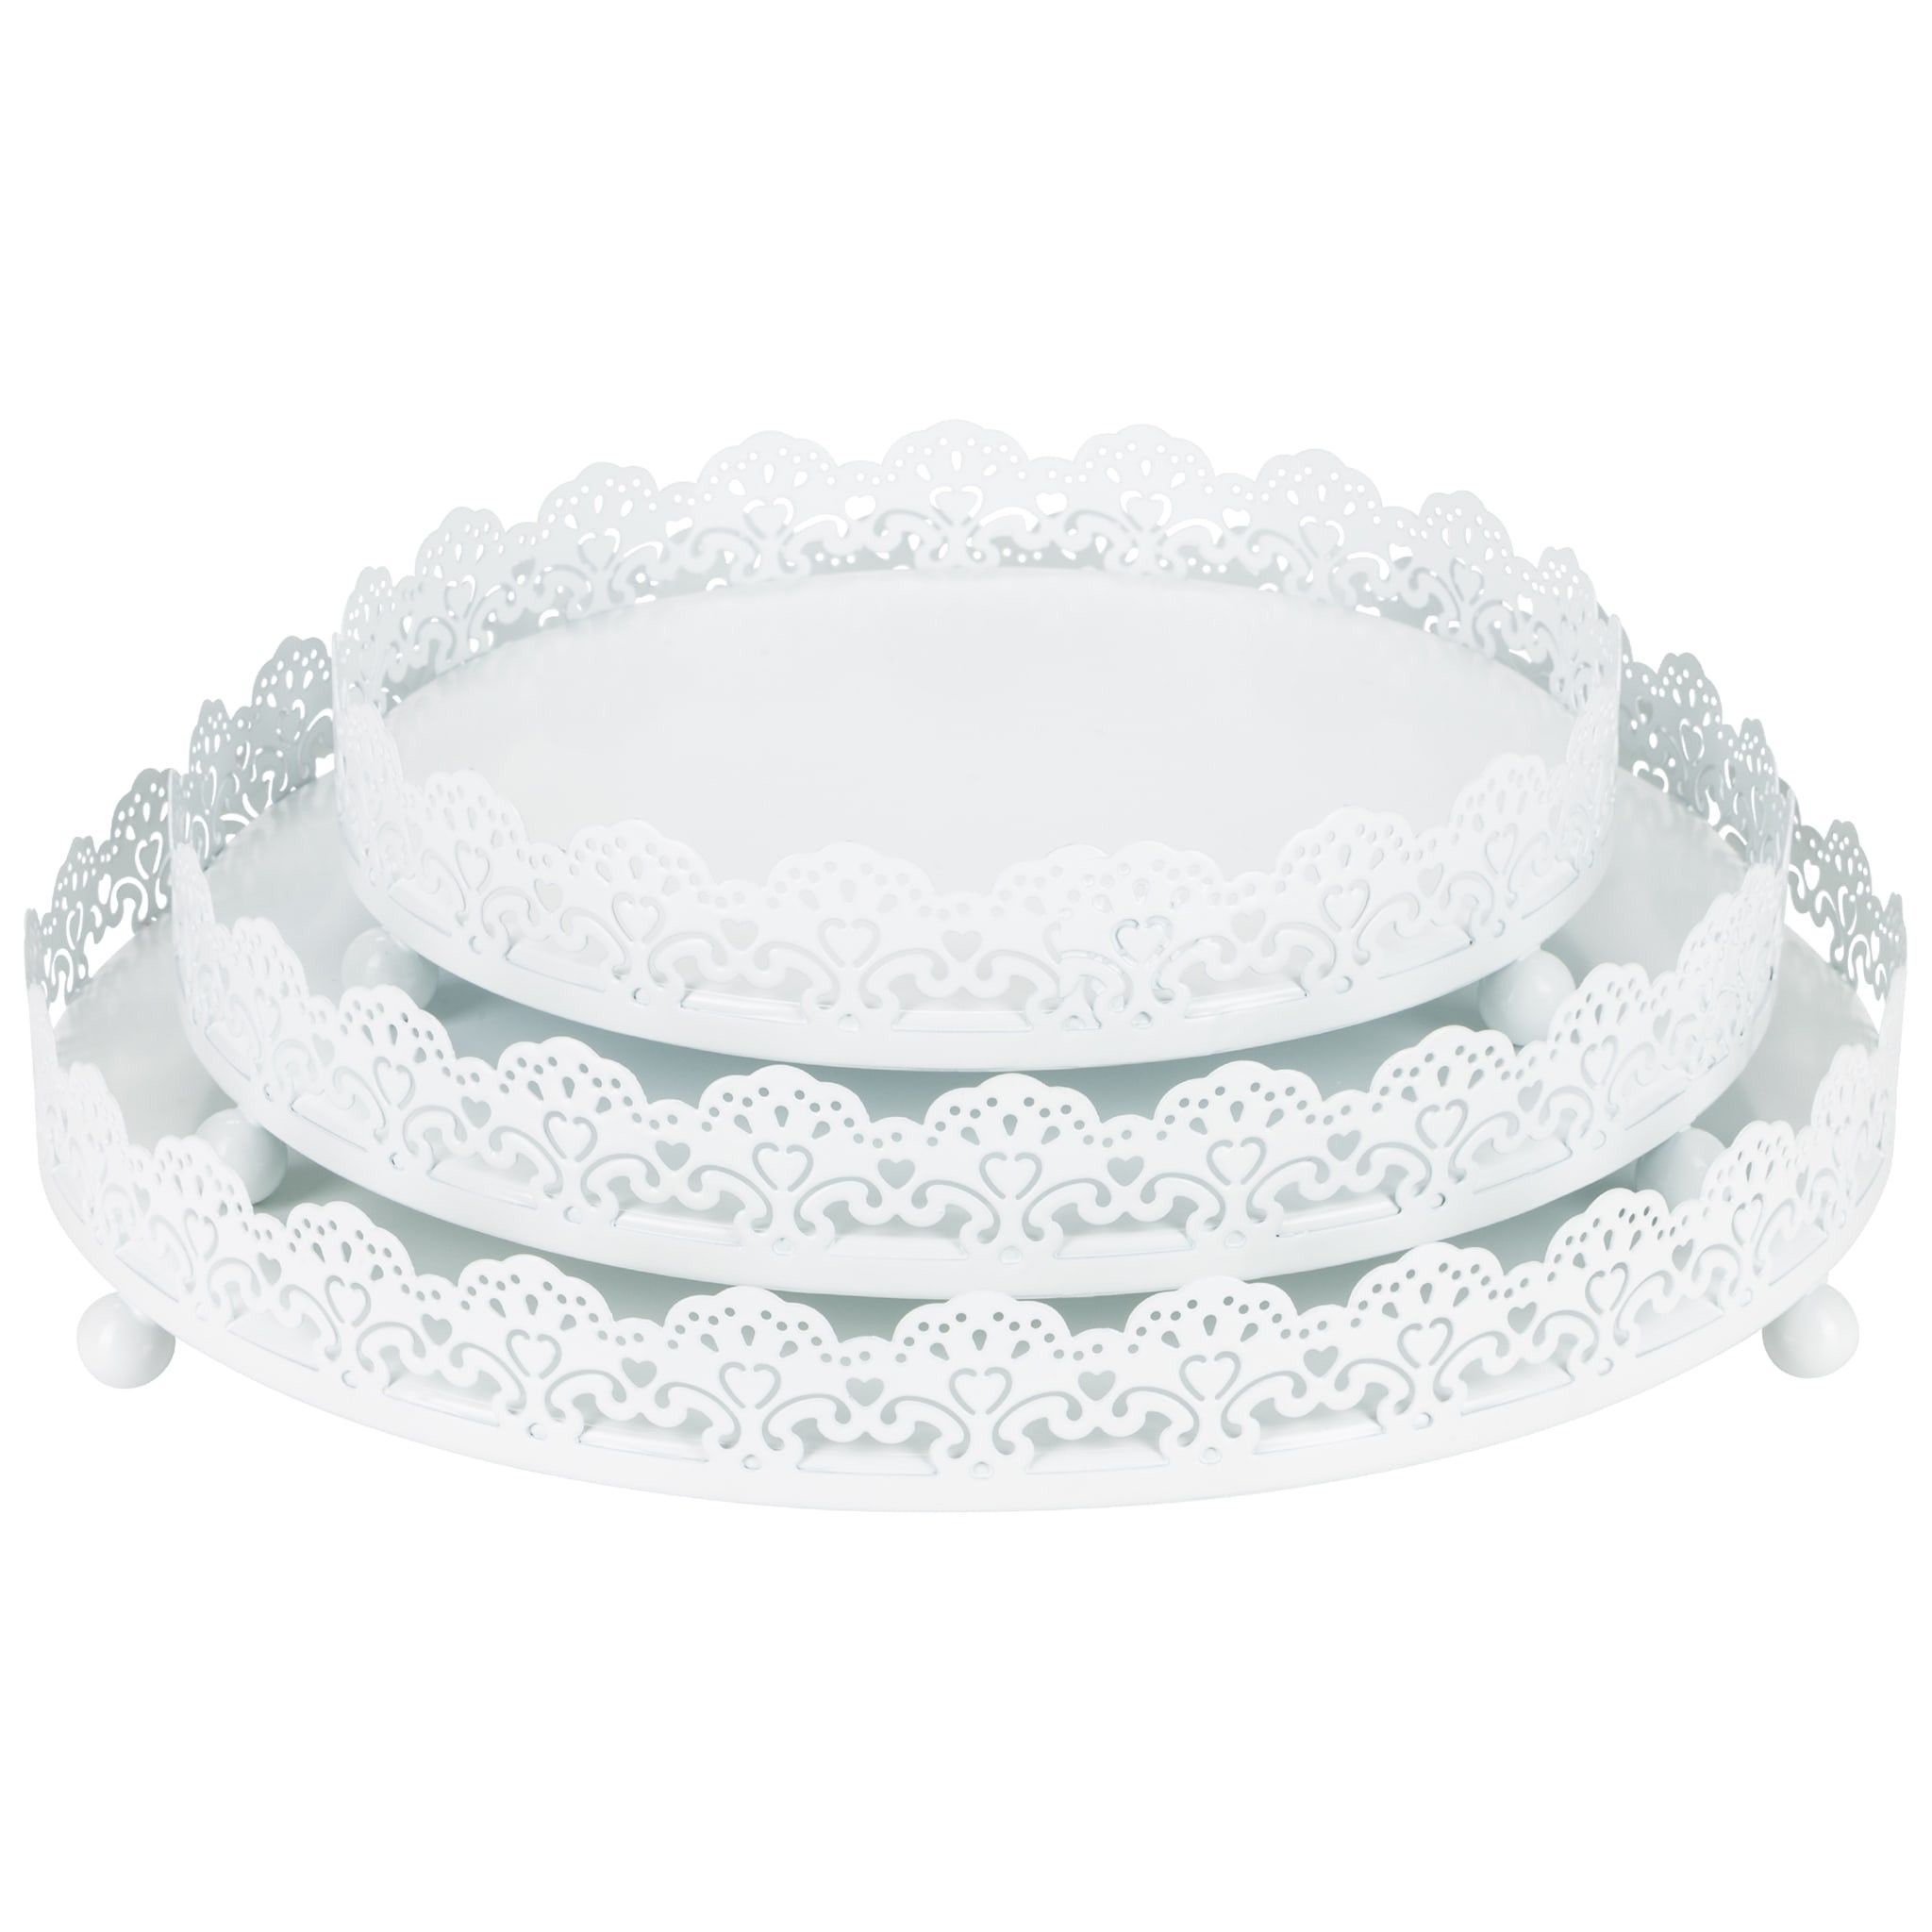 White Decorative Tray Inspiration 3Piece Round Metal Decorative Tray Set White  Decorative Trays Review